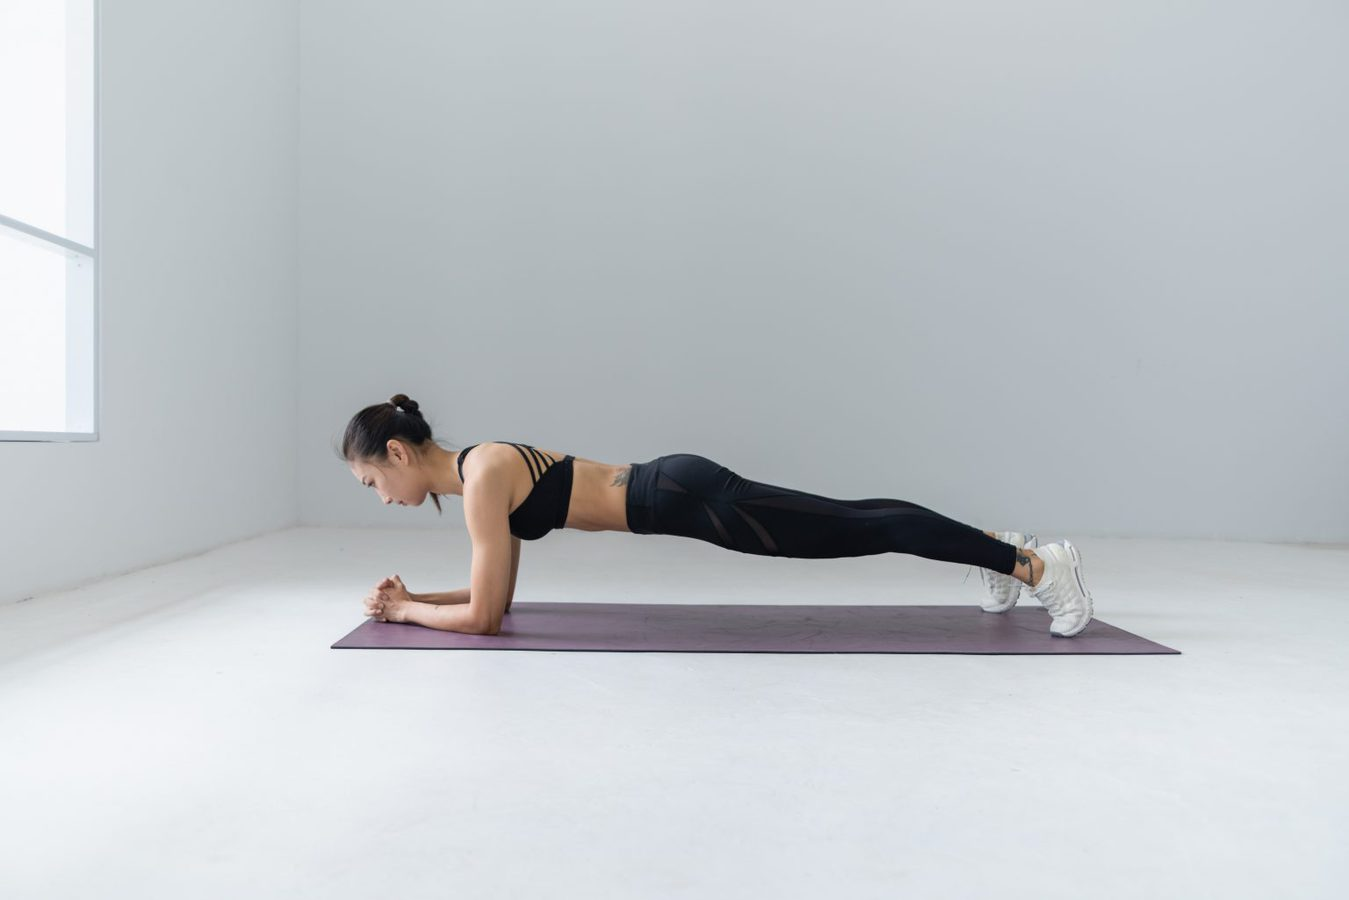 woman planking on exercise mat